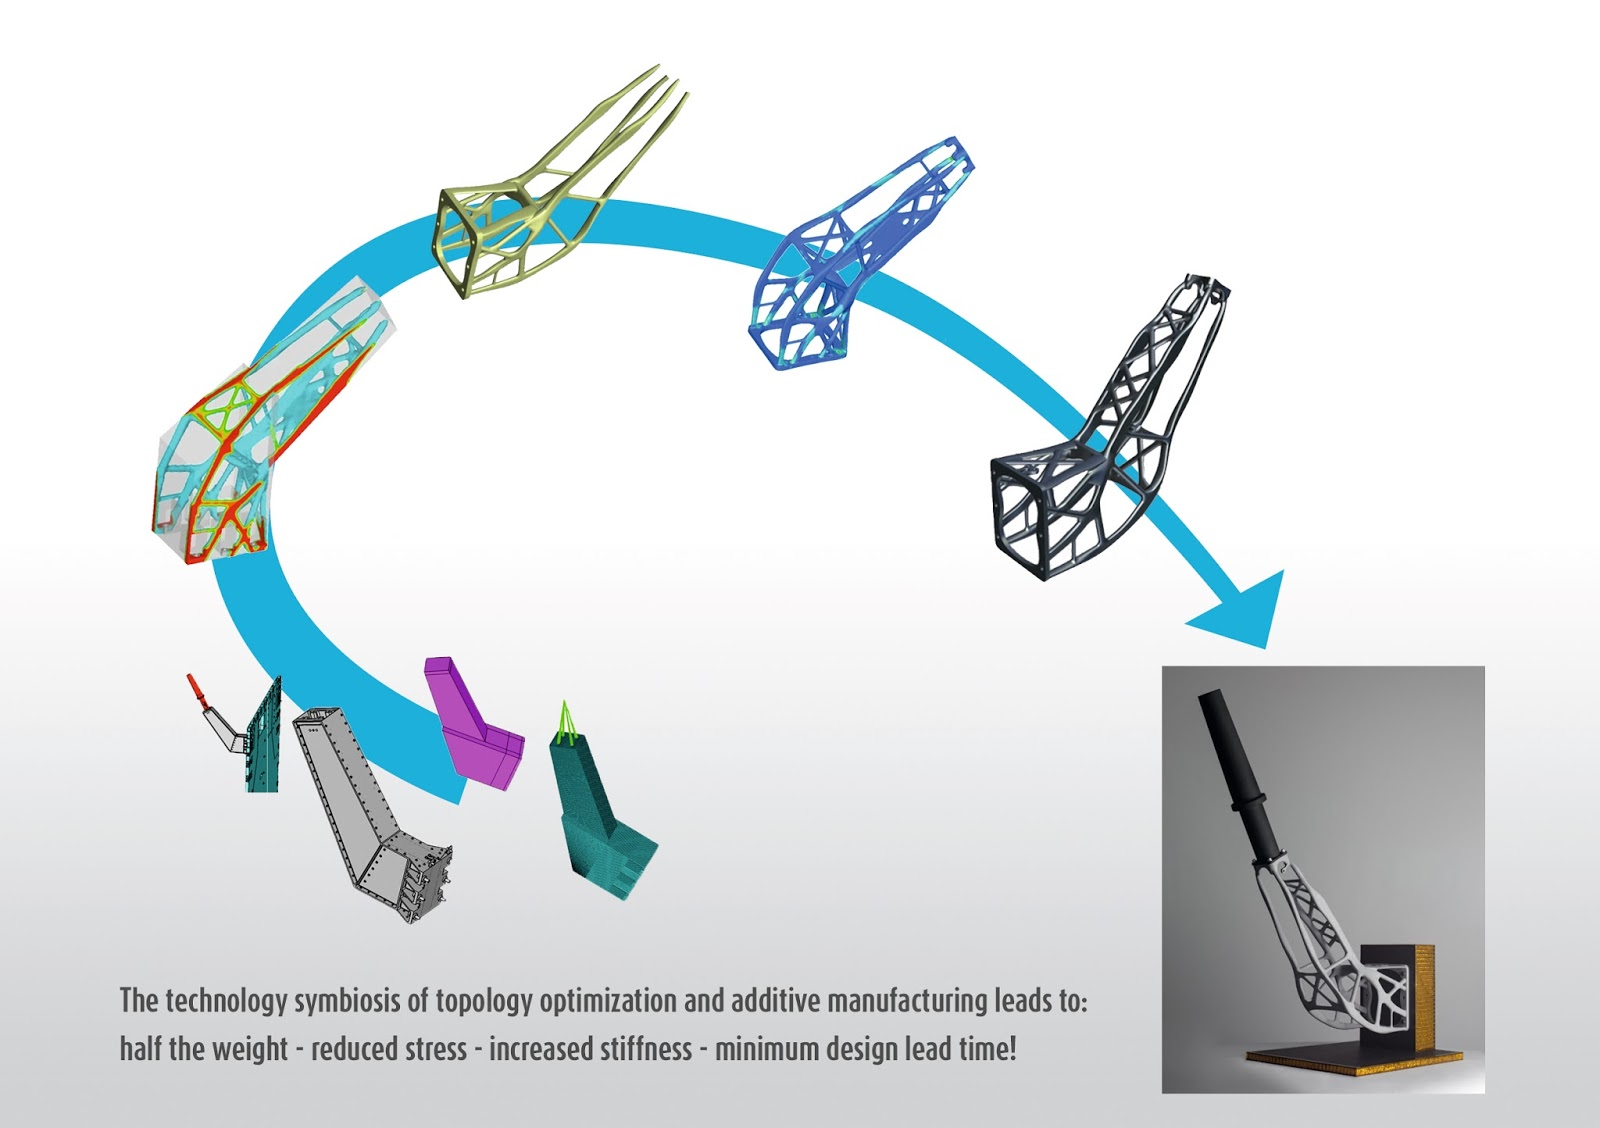 Uav Actual Integration Of Topological And Functional Optimization Intel Puma 6 Block Diagram In Design For Additive Manufacturing